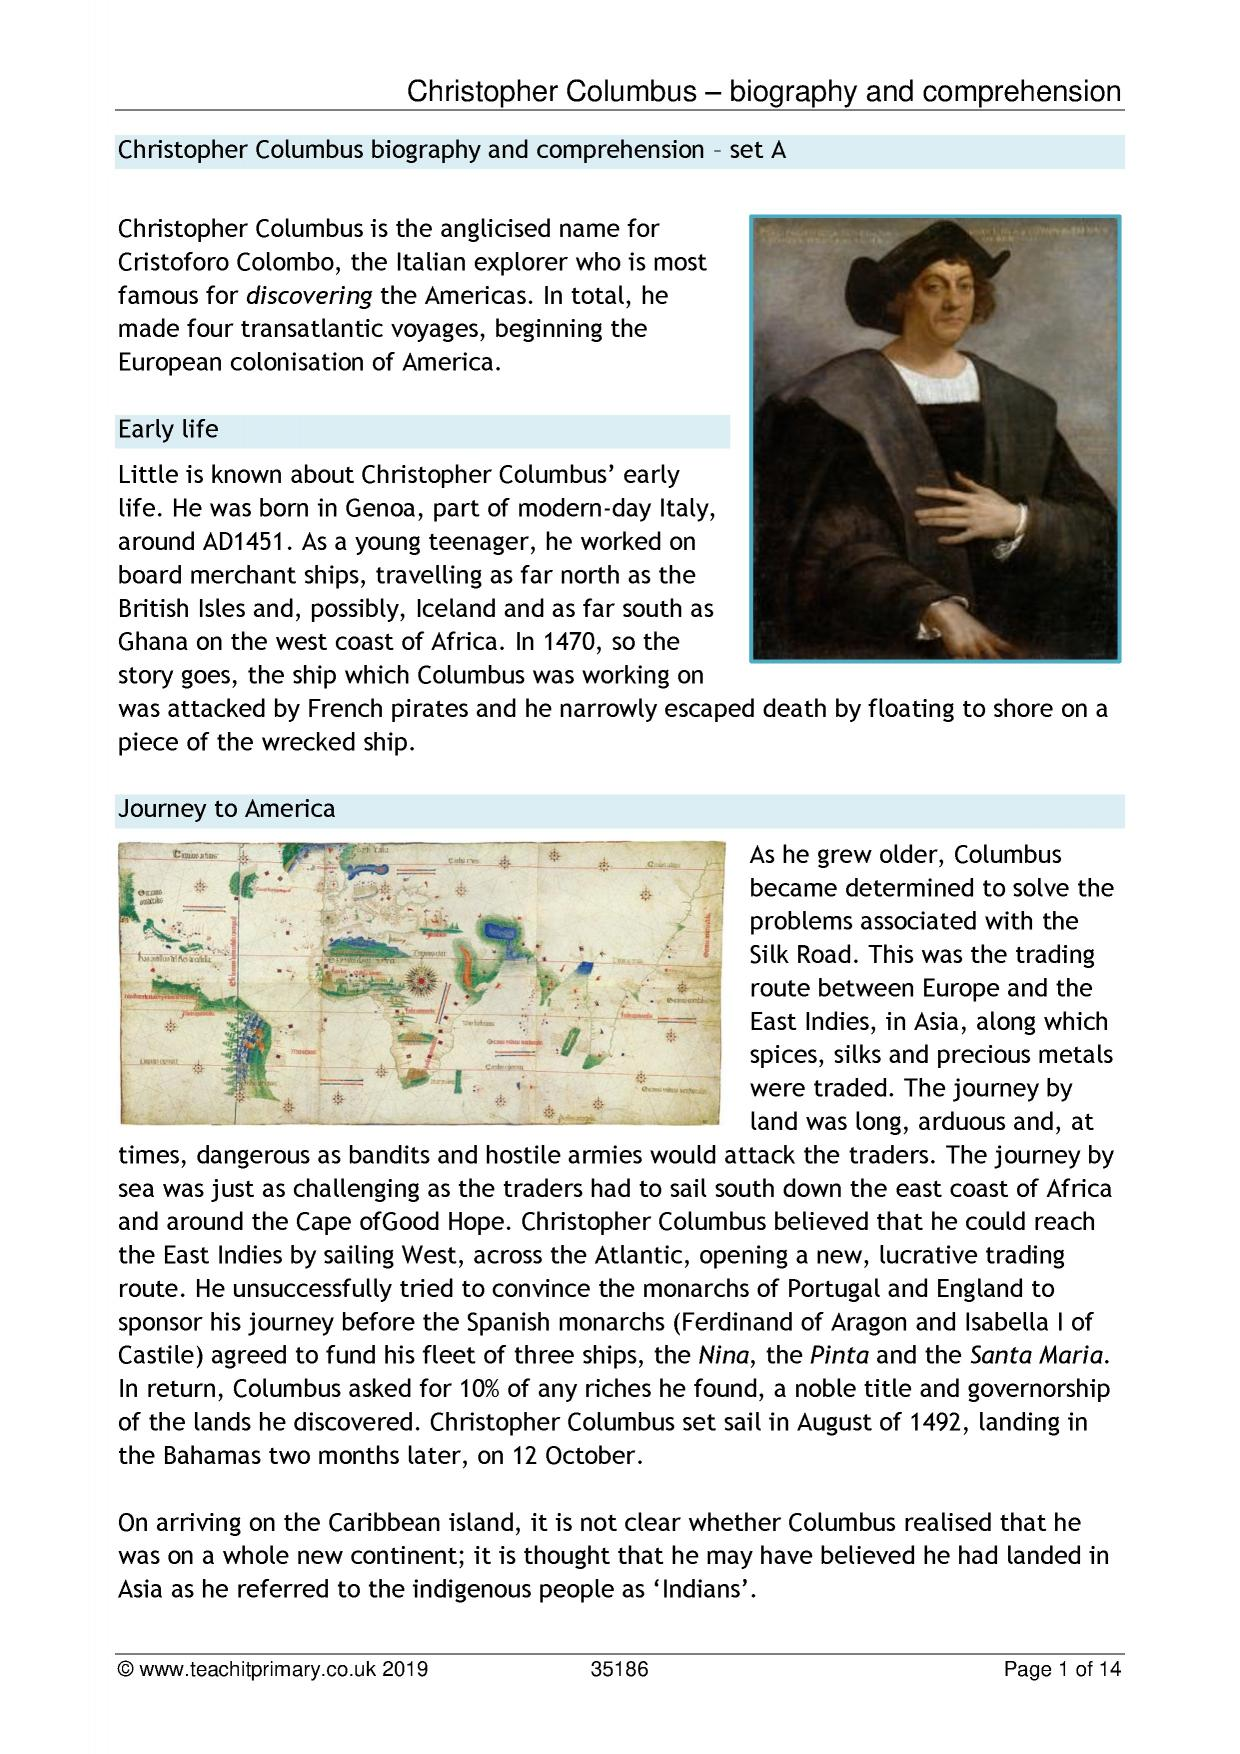 Christopher Columbus Biography And Comprehension